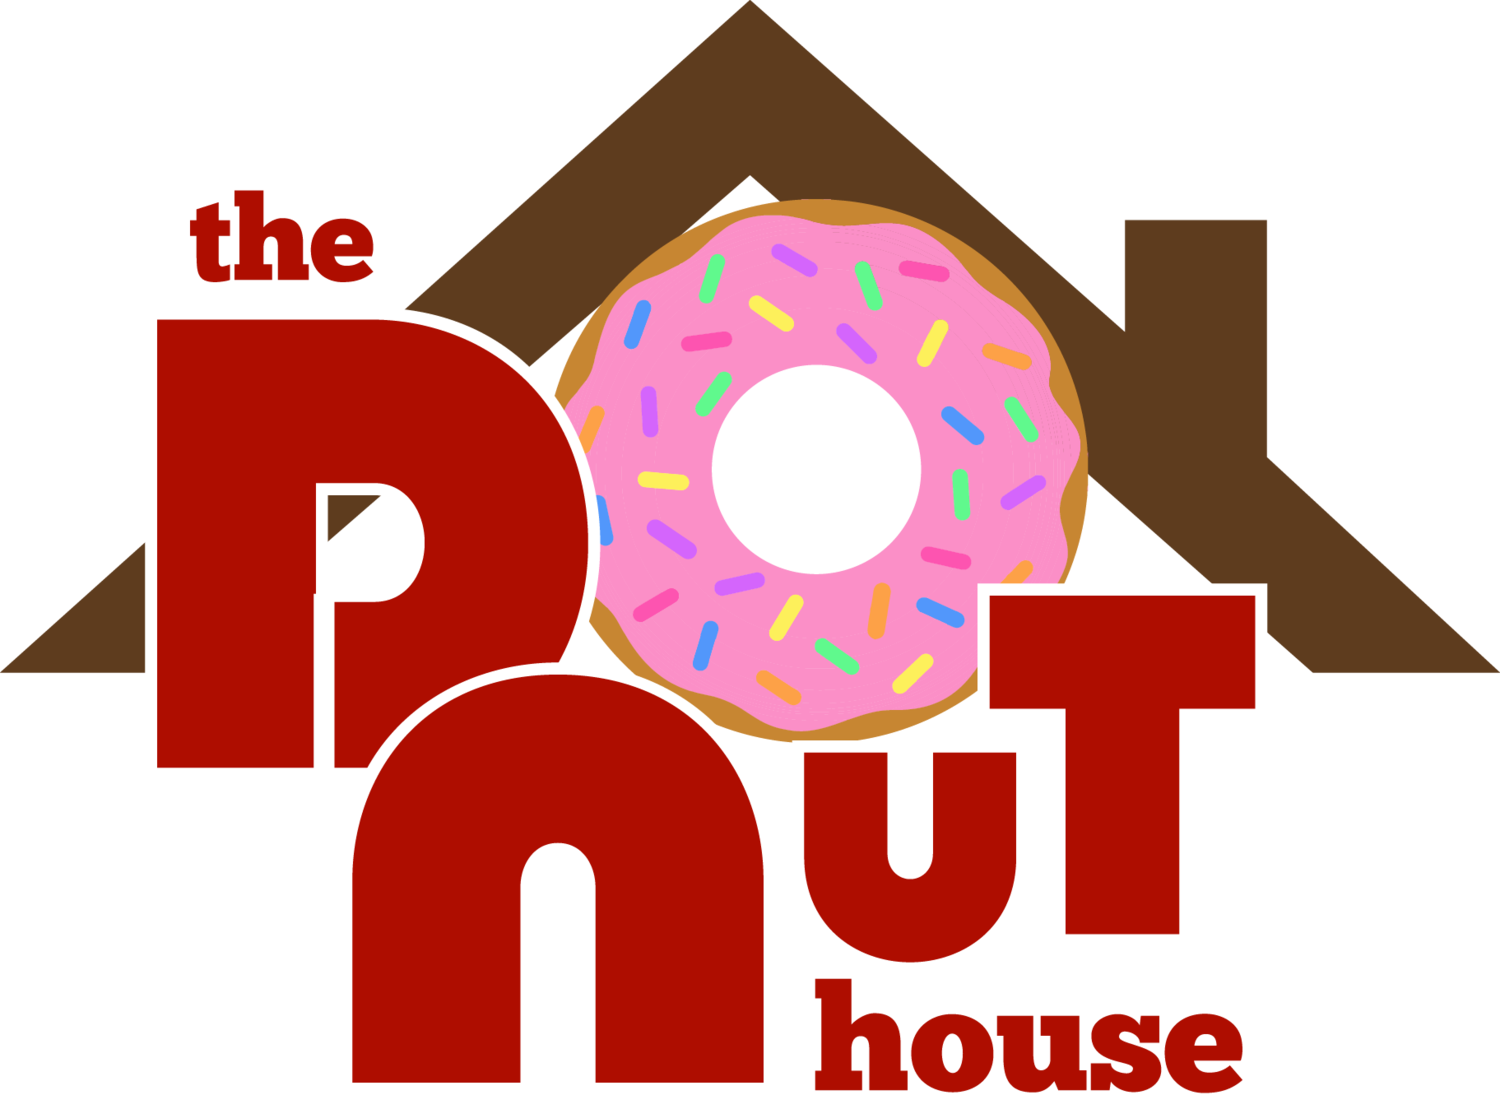 Donut clipart red. The house oak